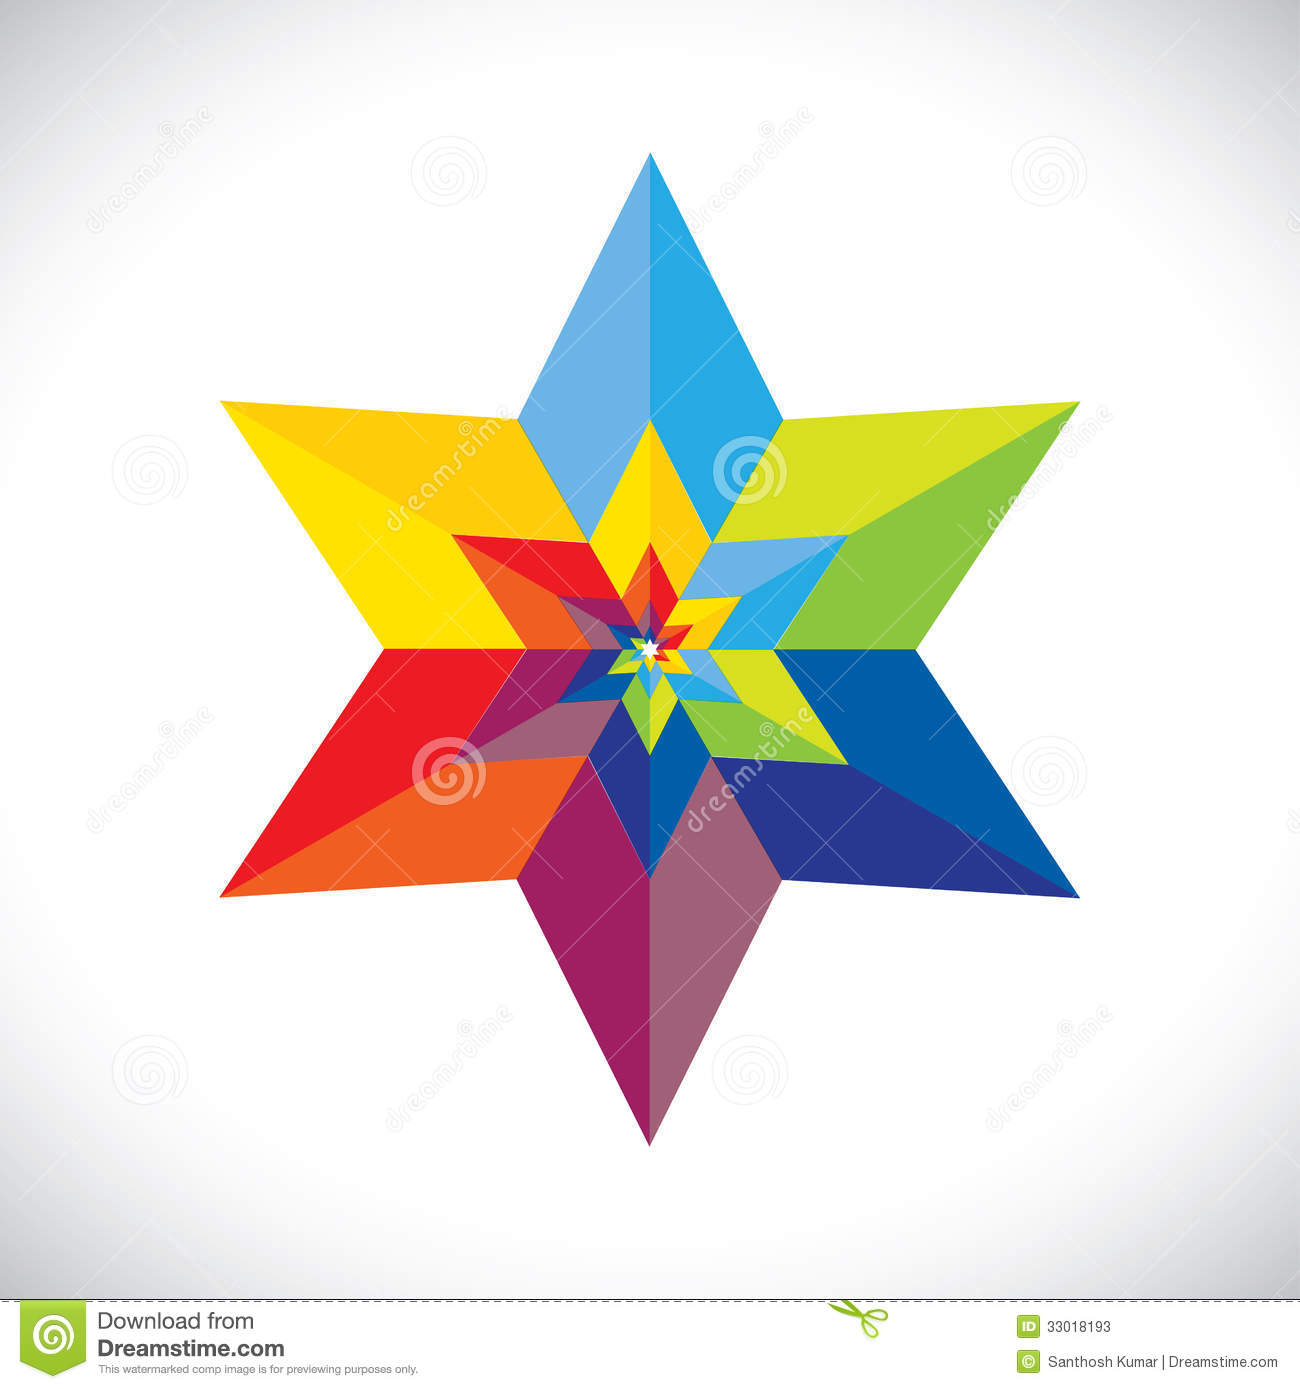 Abstract colorful star shape with six sides vector graphic. This